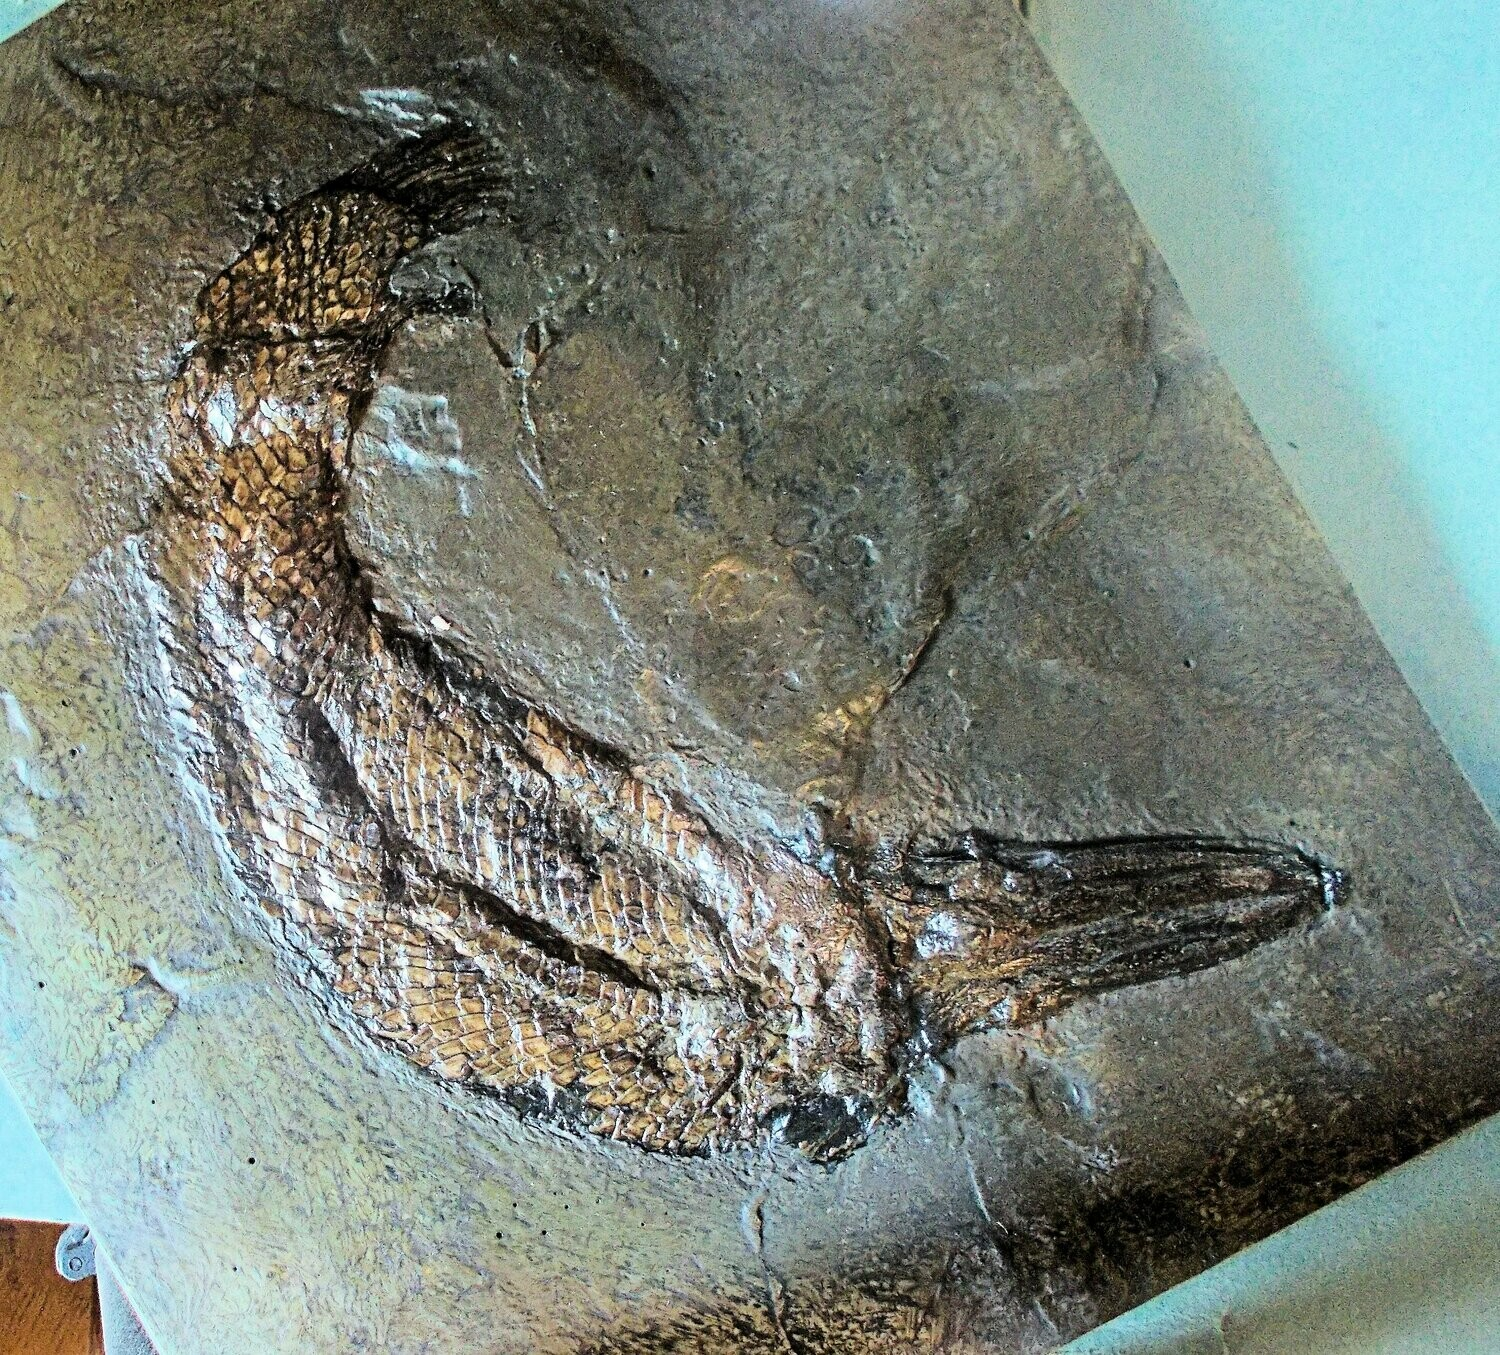 Beautiful 30cm complete Messel Garpike Atractosteus strausi: Middle Eocene of Darmstatdt, Germany.